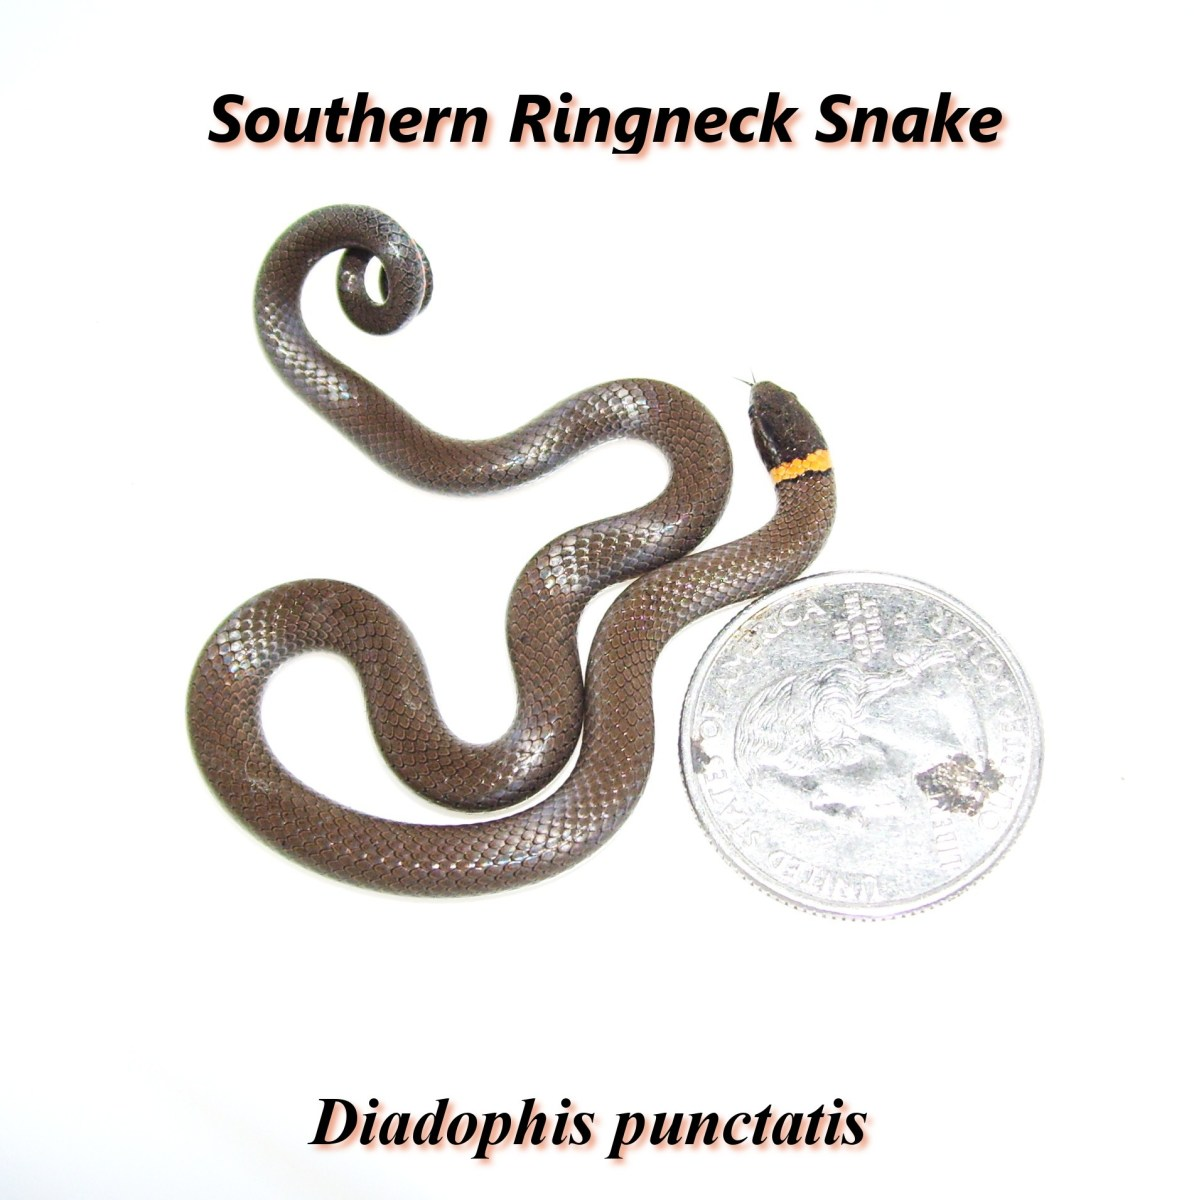 The Southern Ringneck snake.